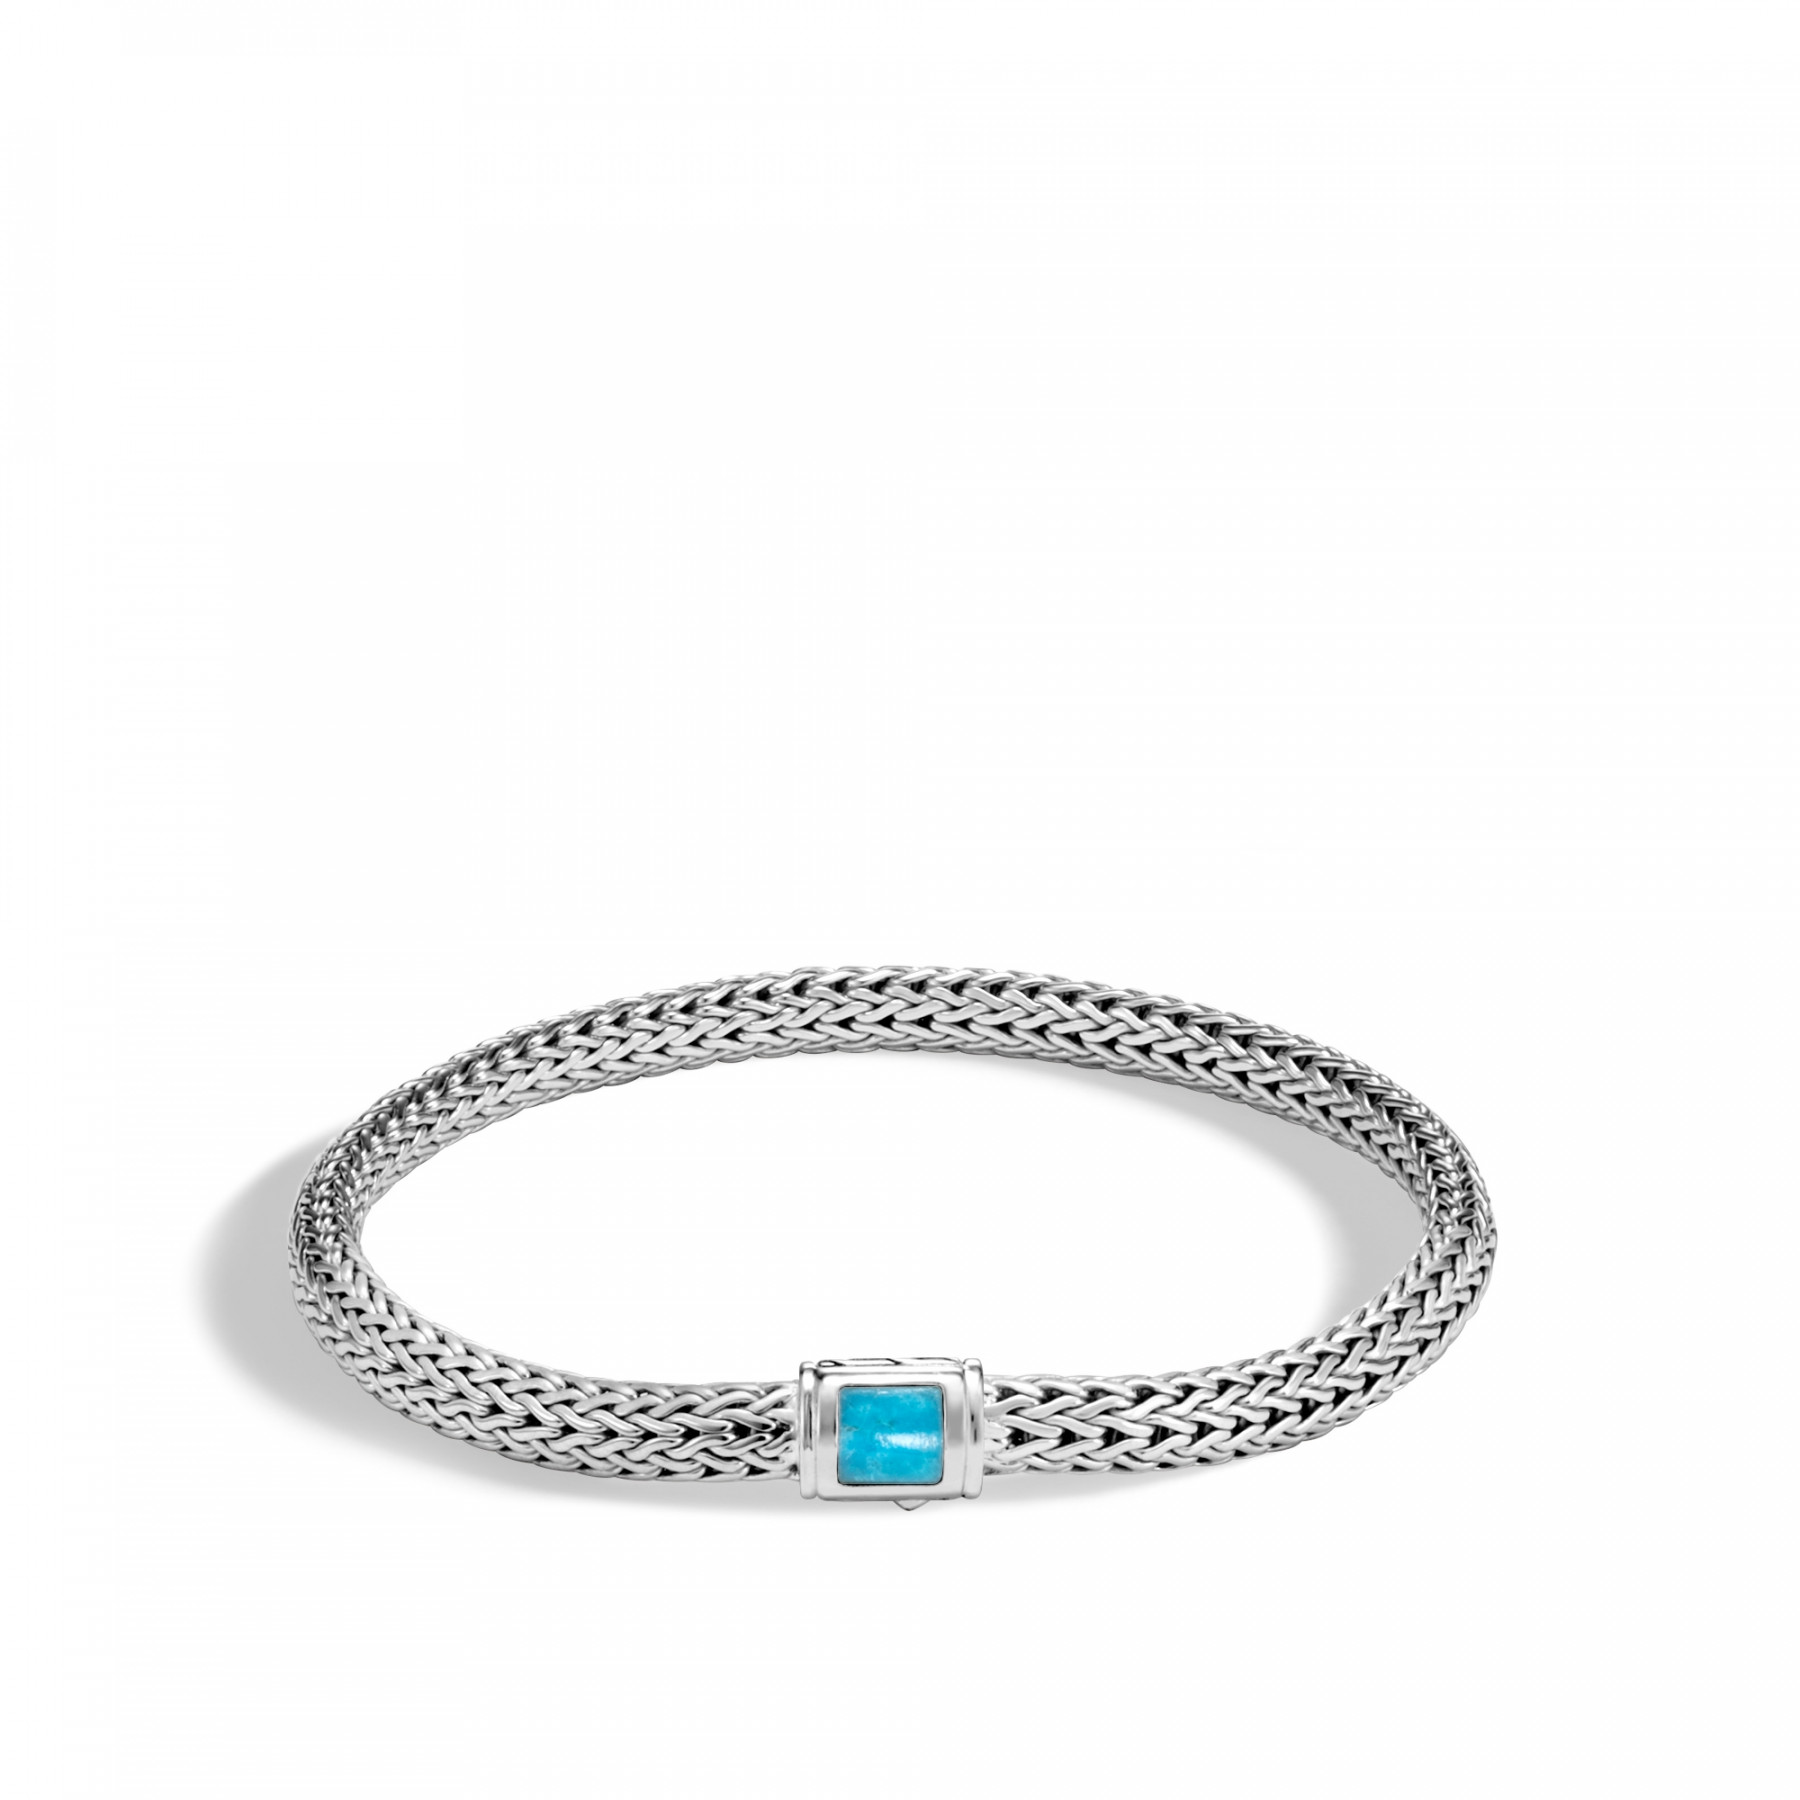 John Hardy Extra Small Classic Chain 5mm Turquoise Bracelet